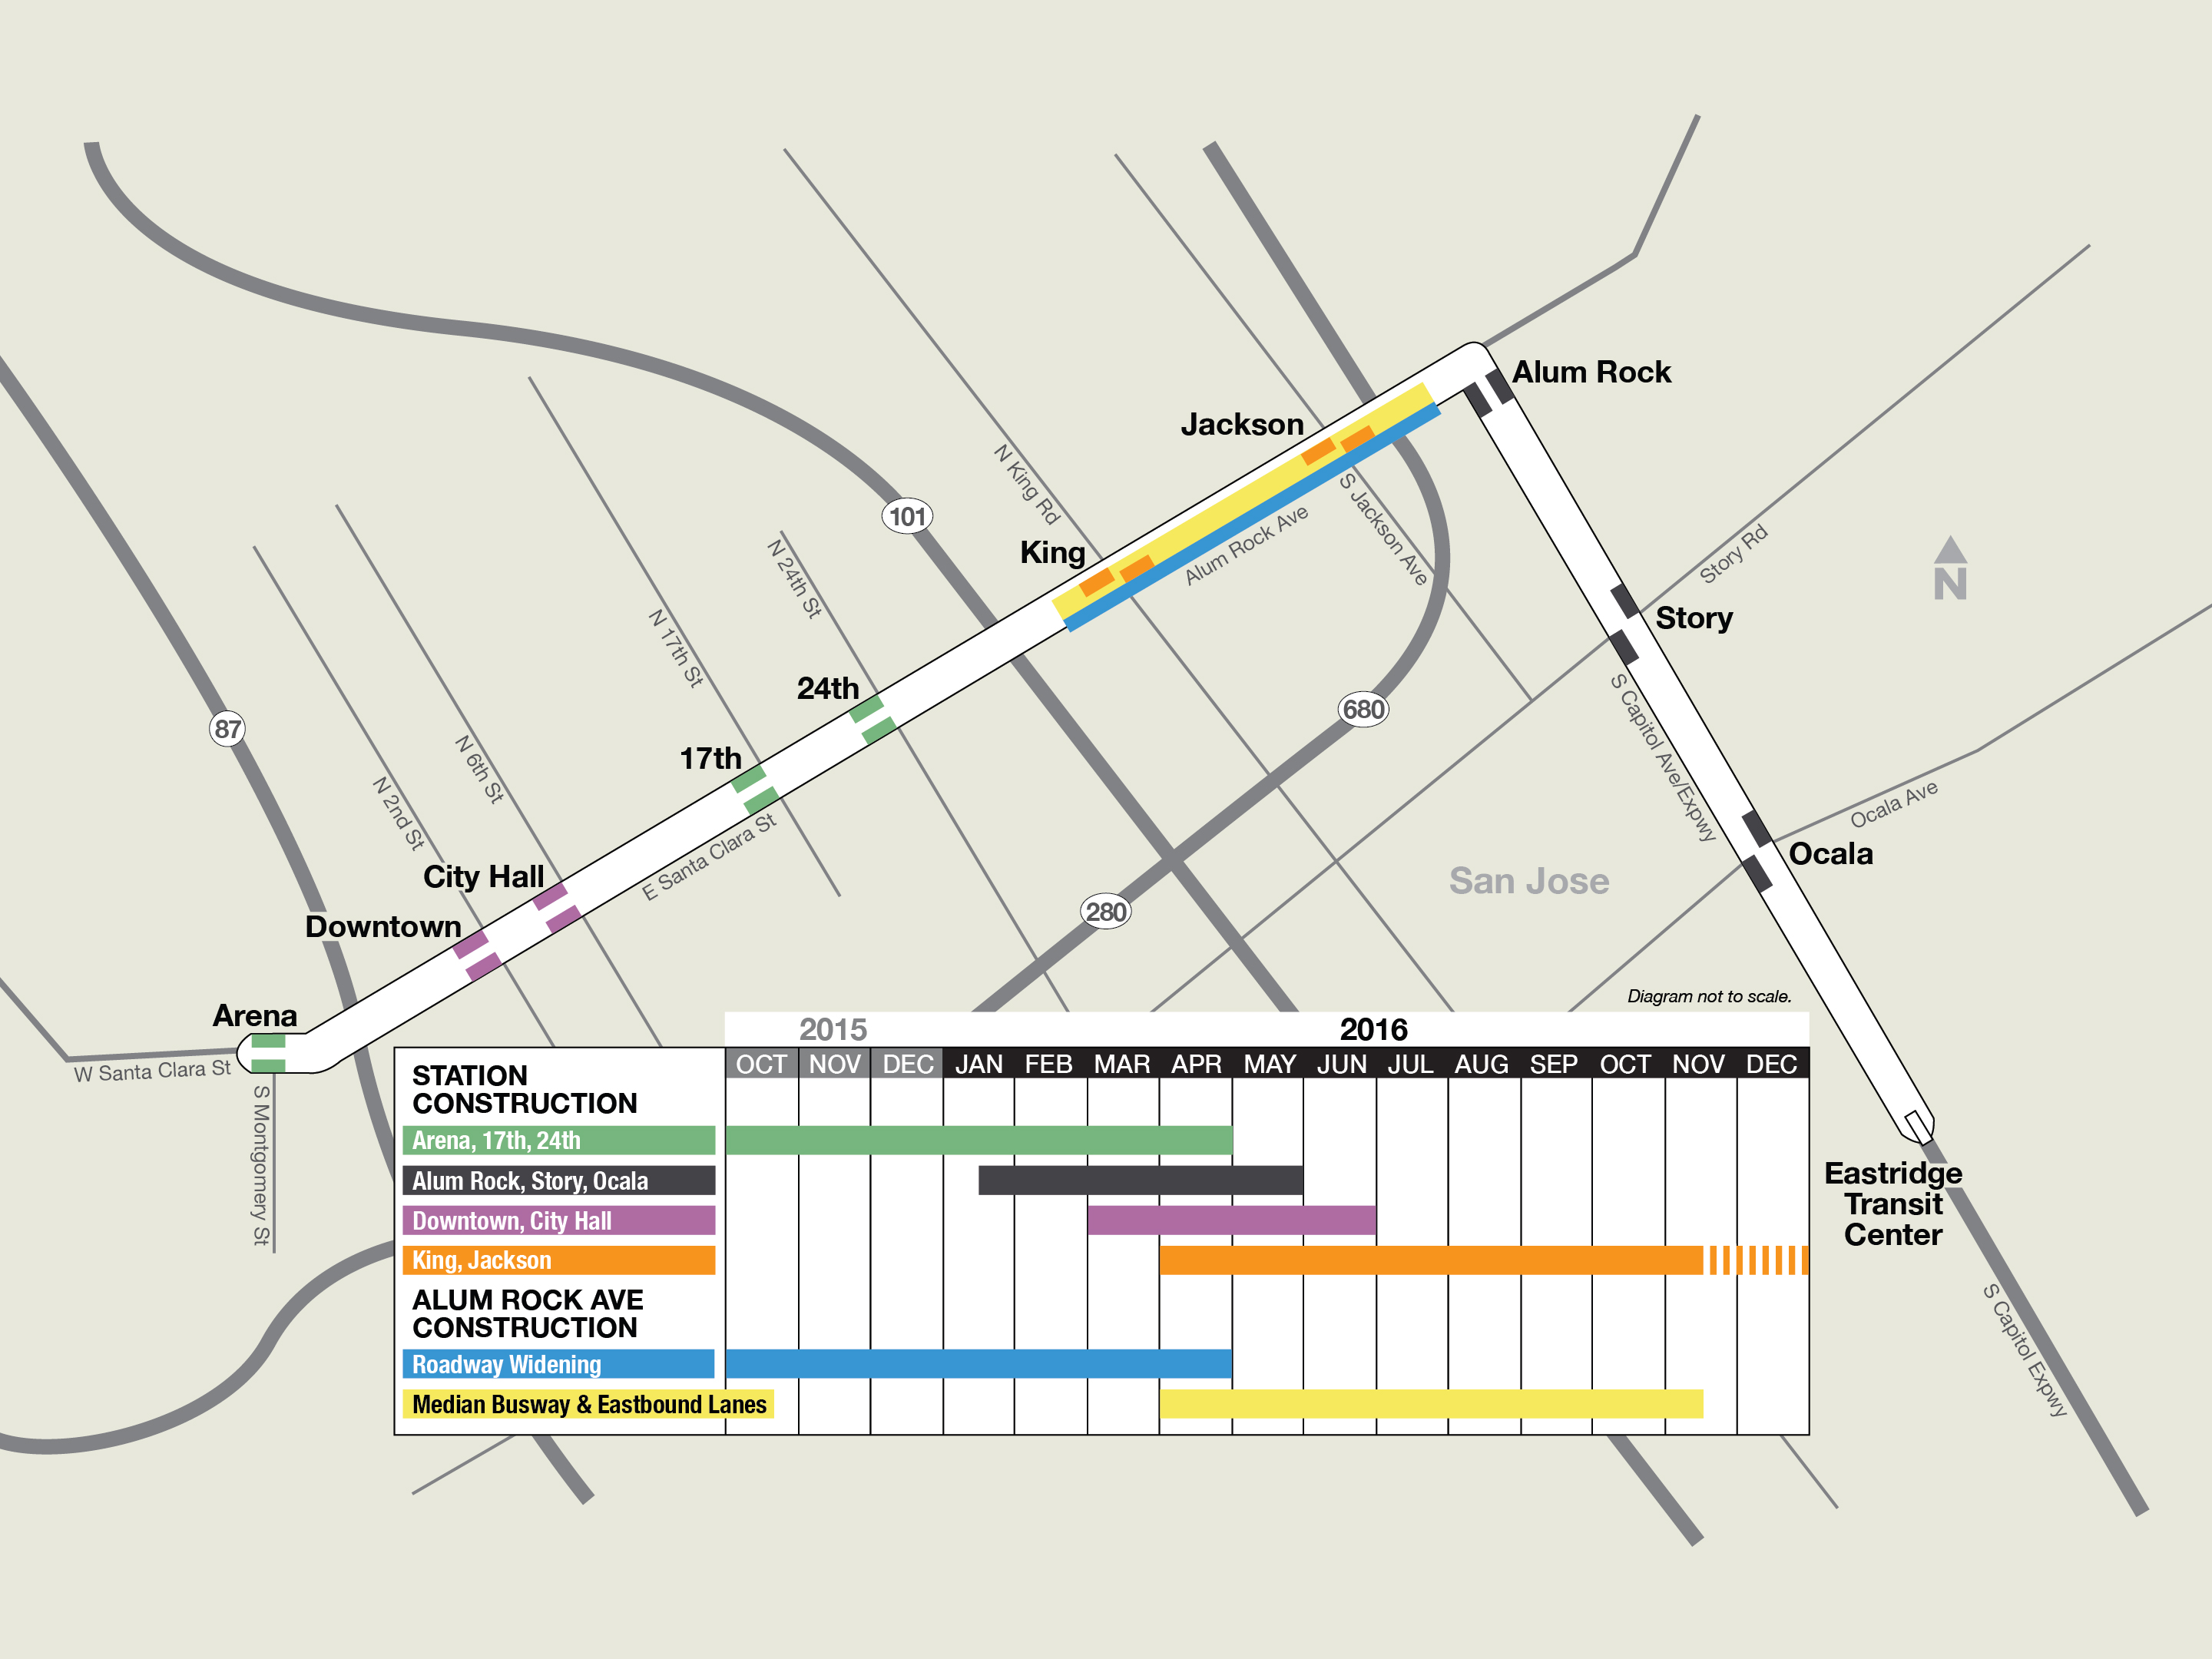 Alum Rock BRT construction map and timeline